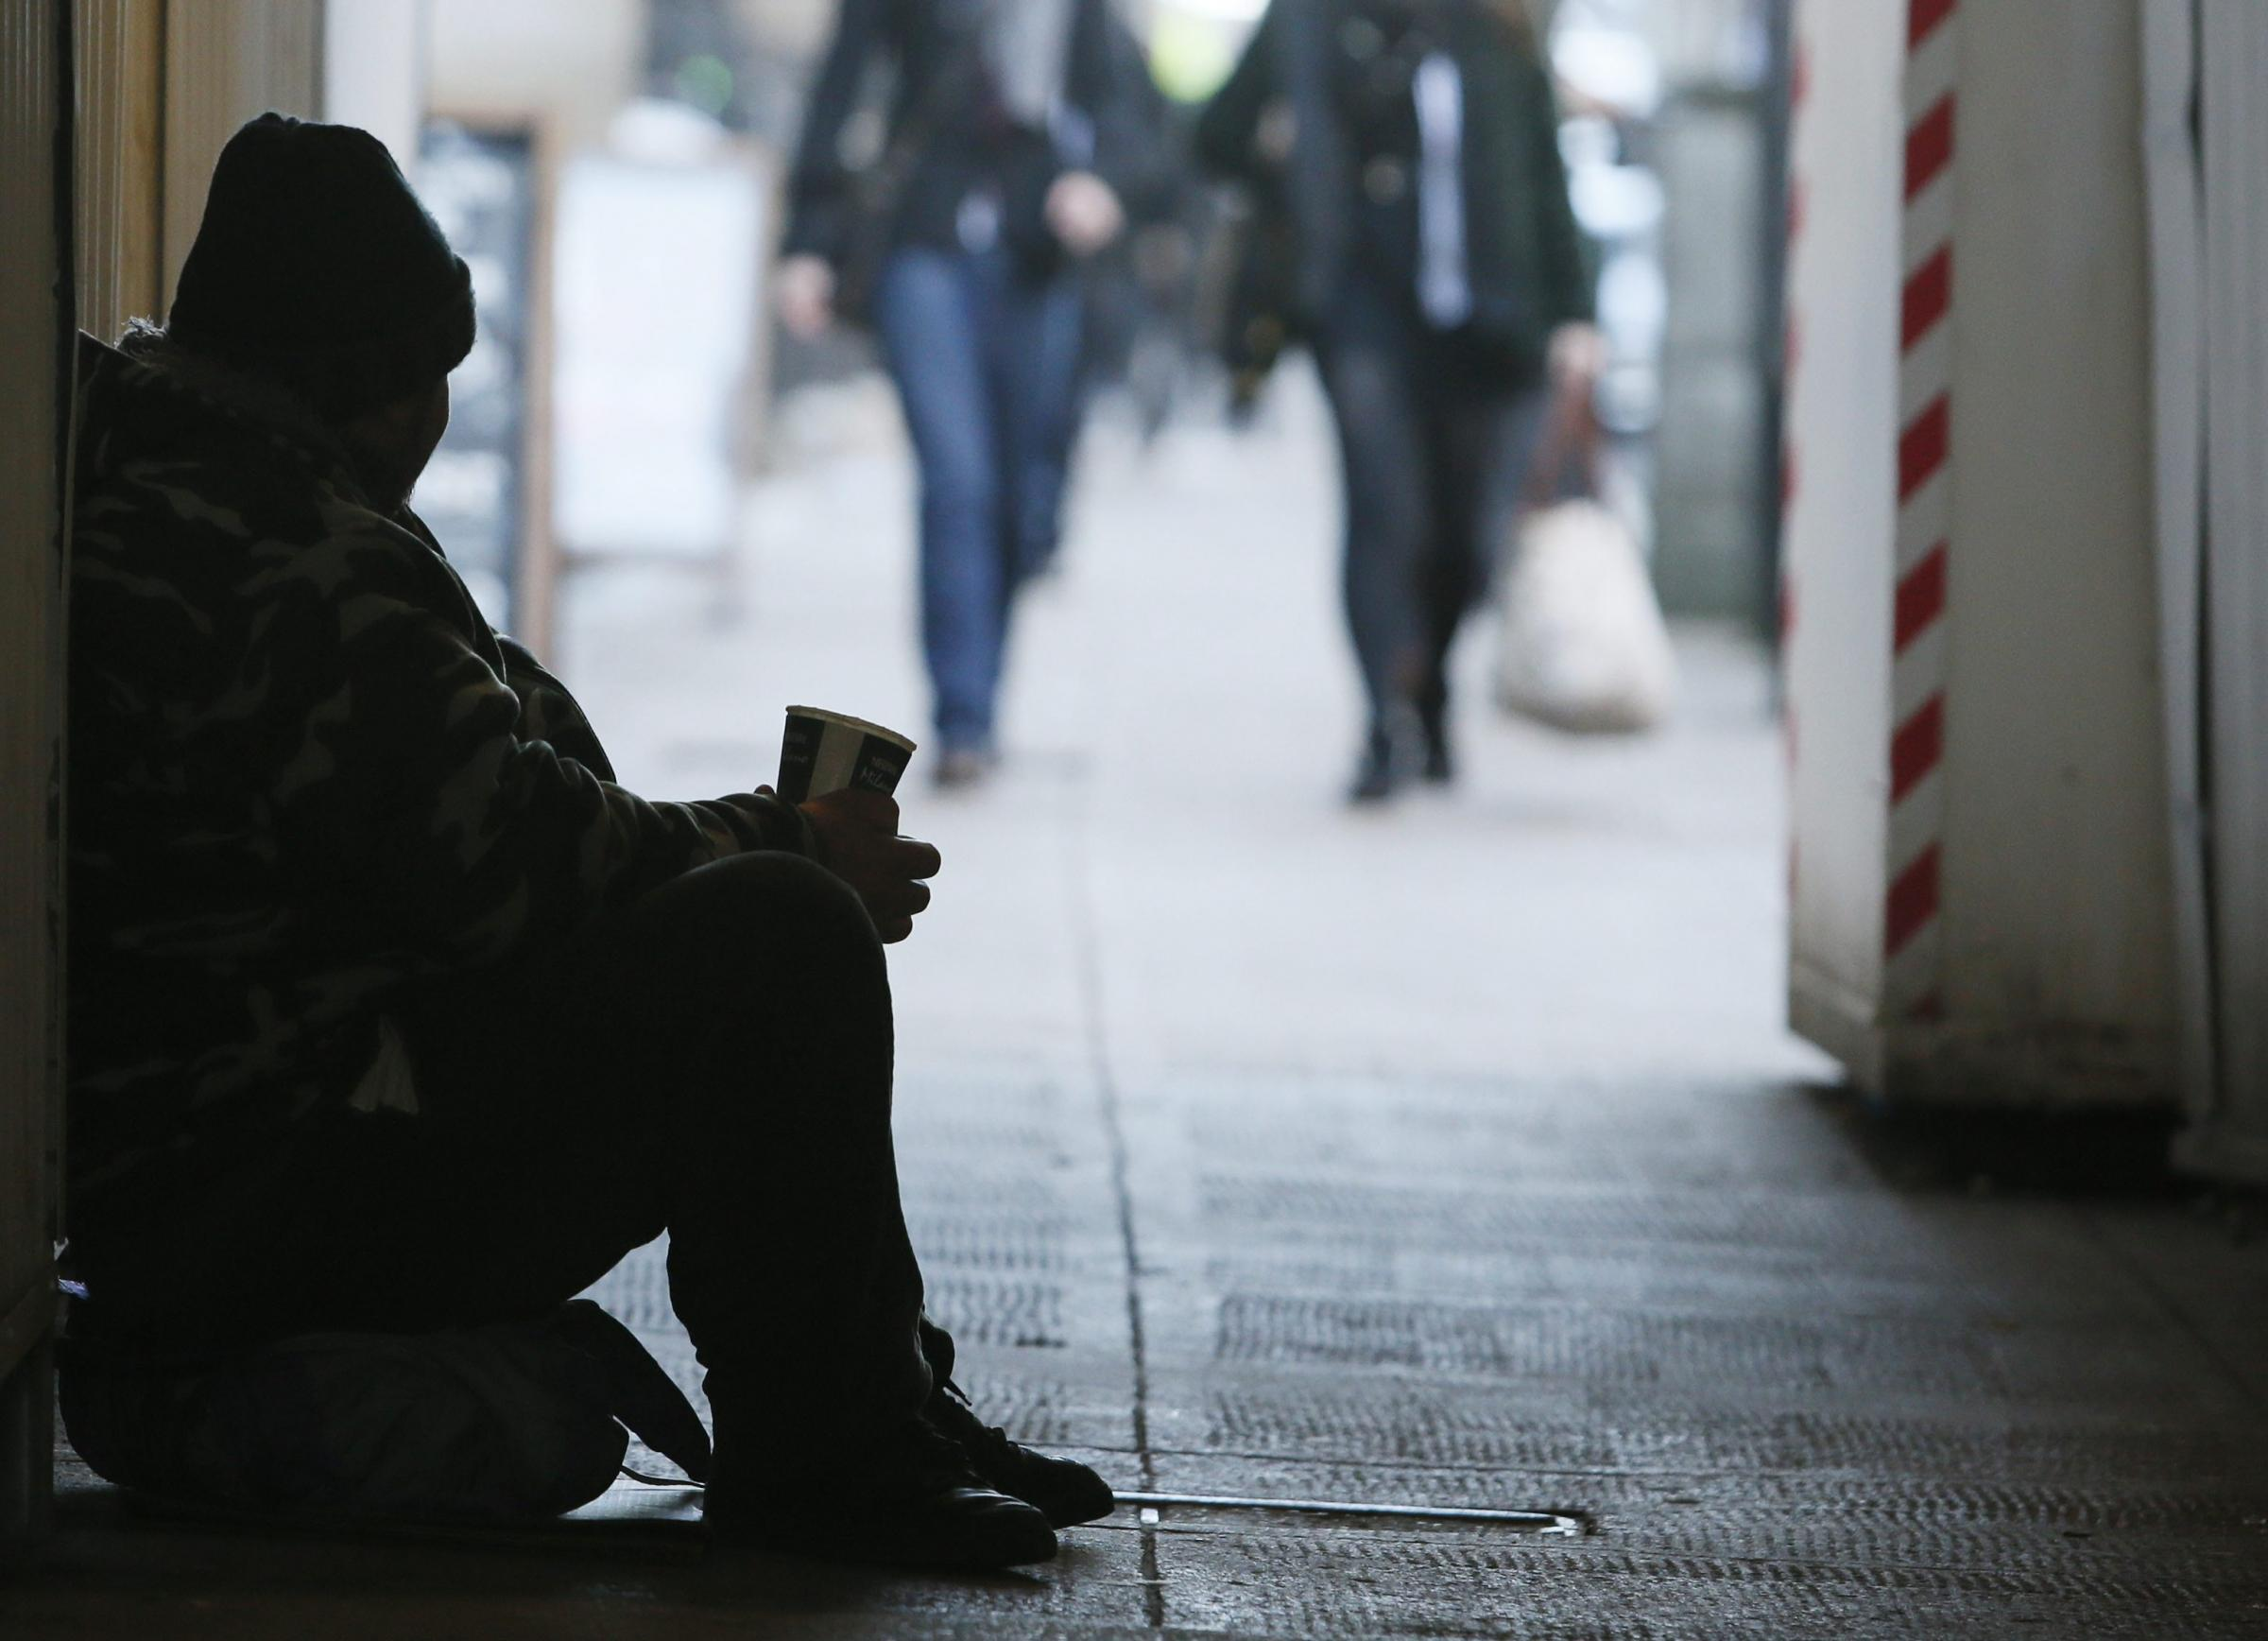 Beggars seen in Wantage, Wallingford and Thame